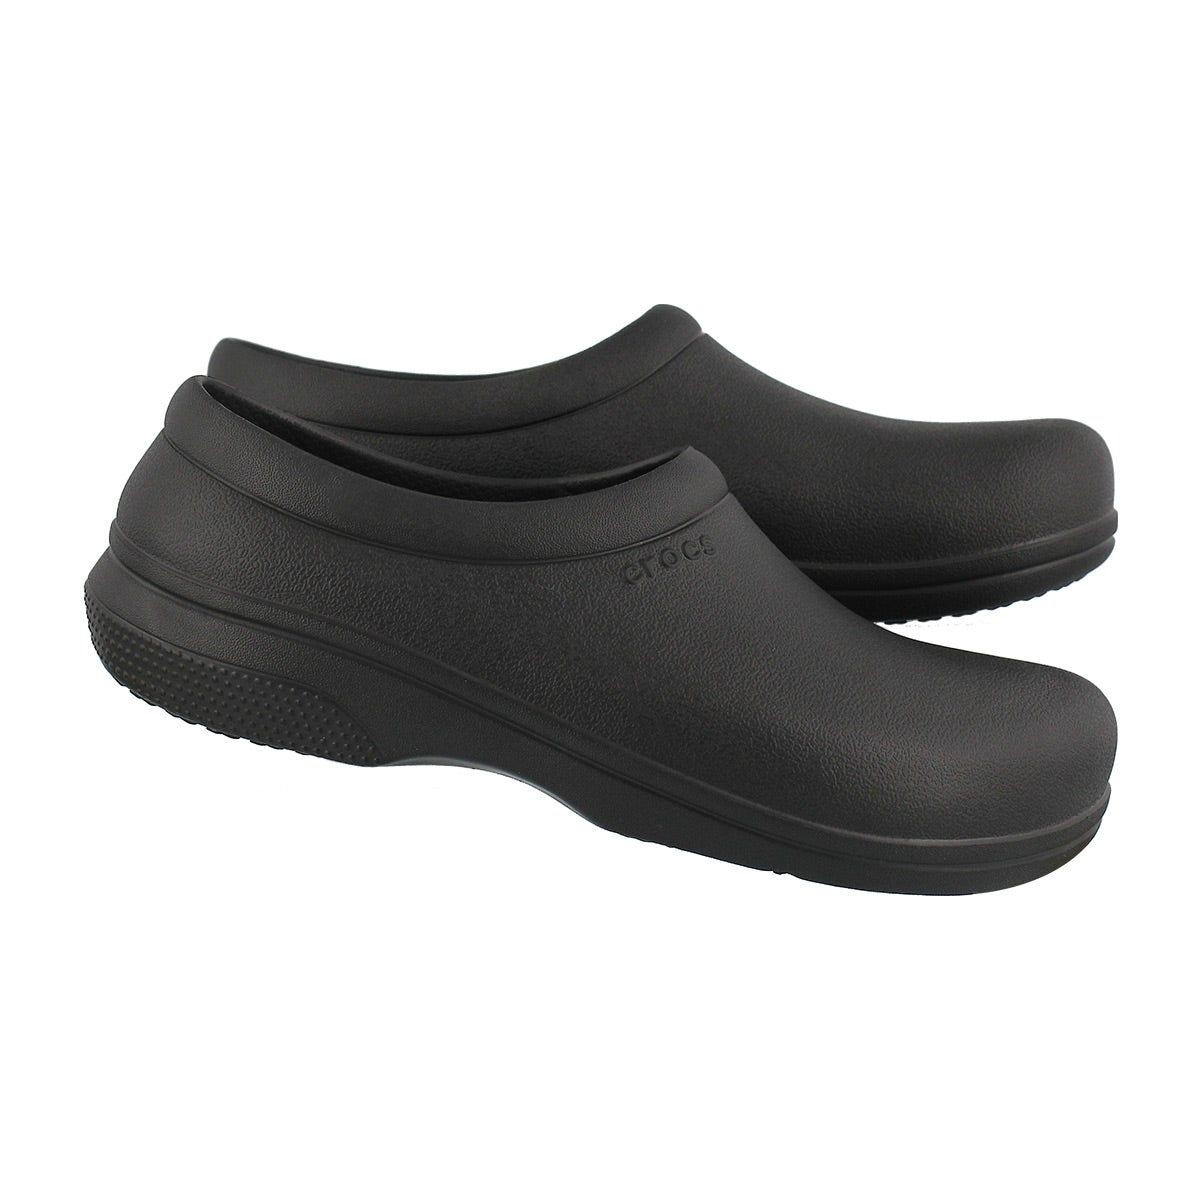 Lds On-The-Clock Work bk slip on clogs